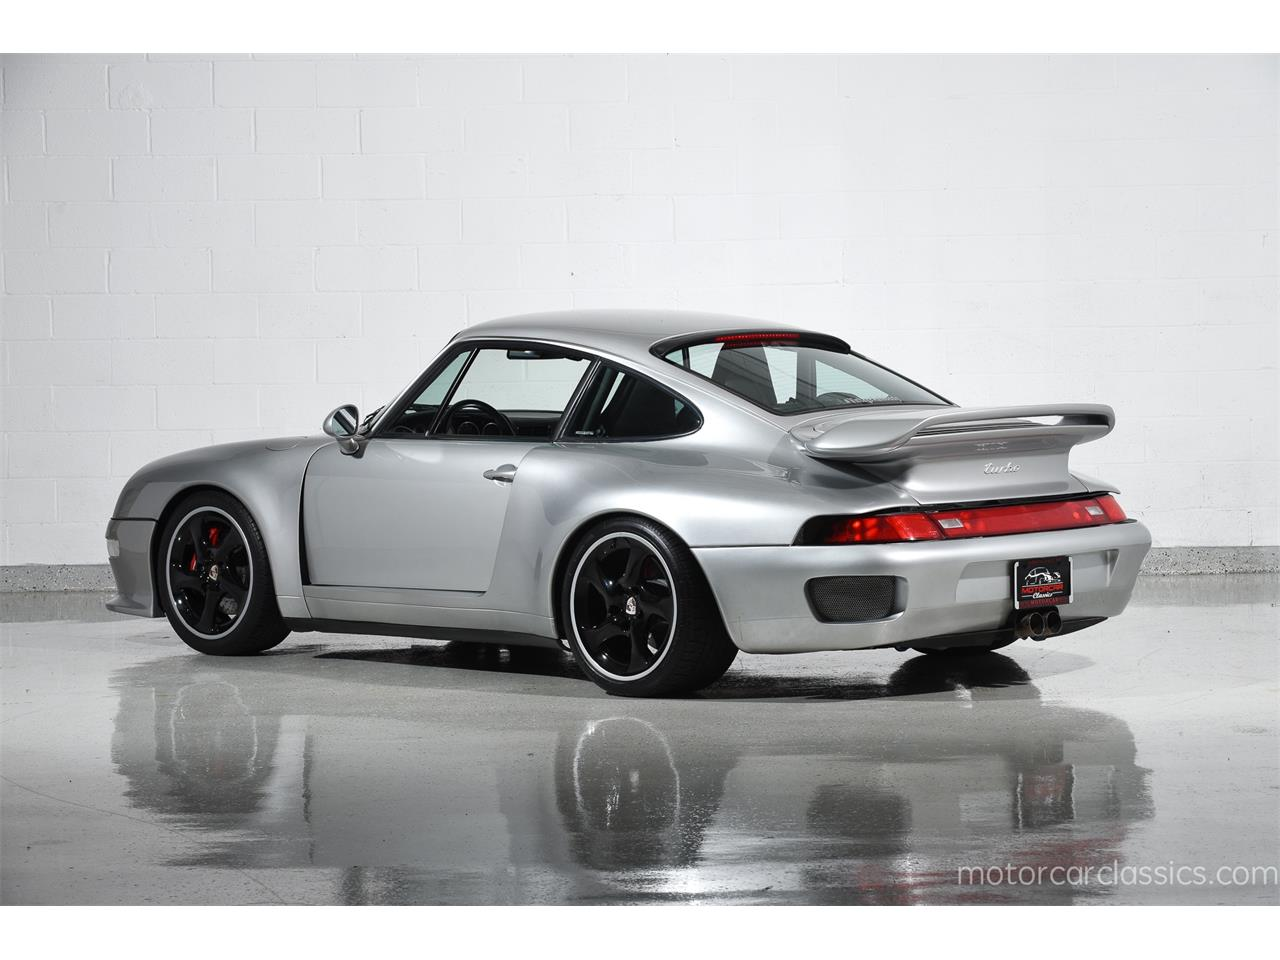 Large Picture of '96 Porsche 911 Turbo - $69,900.00 Offered by Motorcar Classics - MBOA